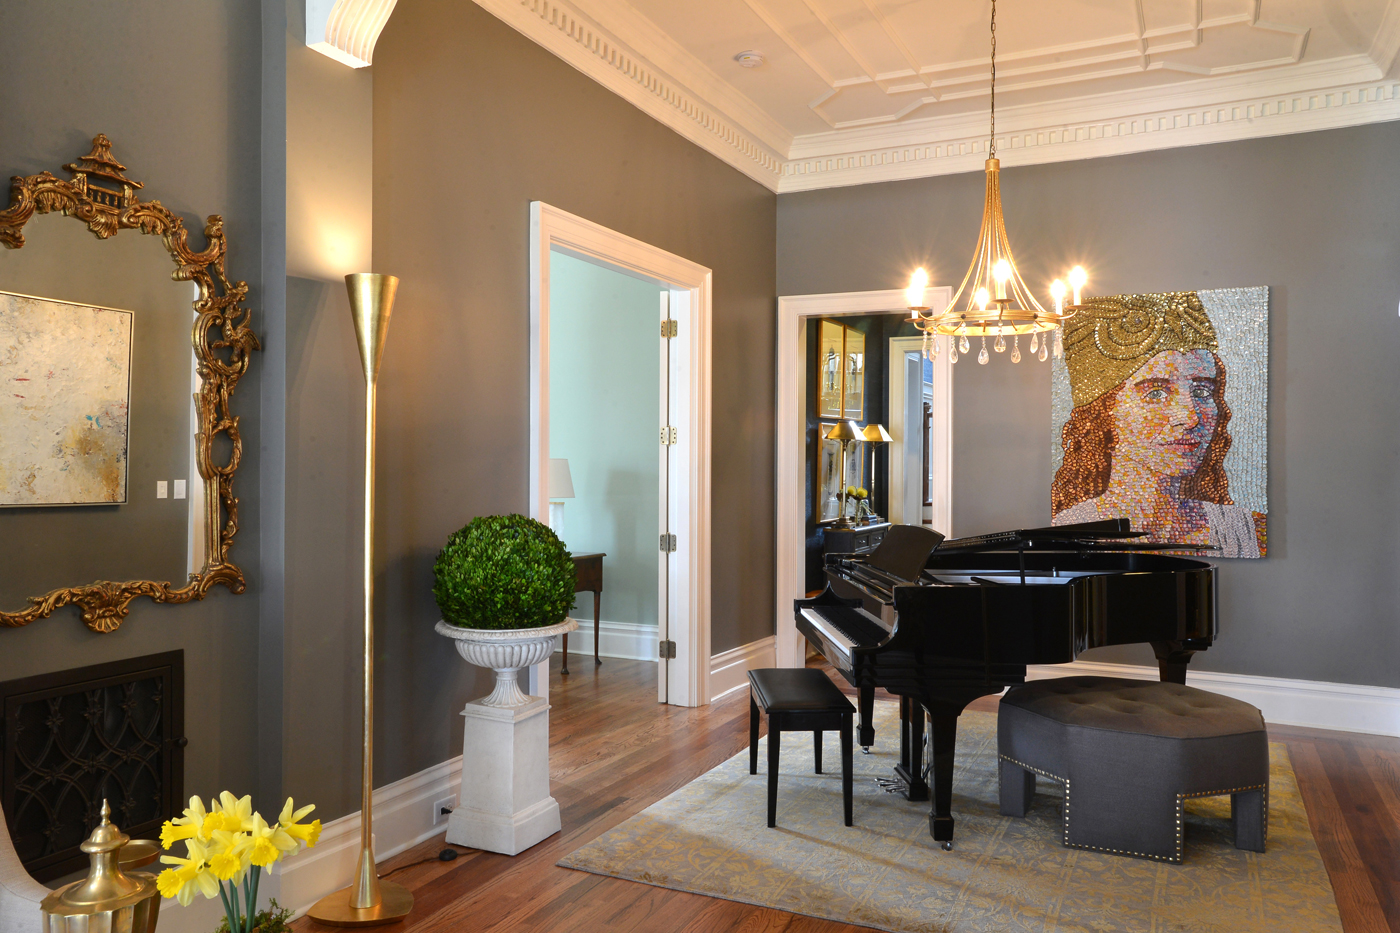 Custom ceiling tracery above piano and large ottoman anchoring the rear of the entry room | Savage Interior Design